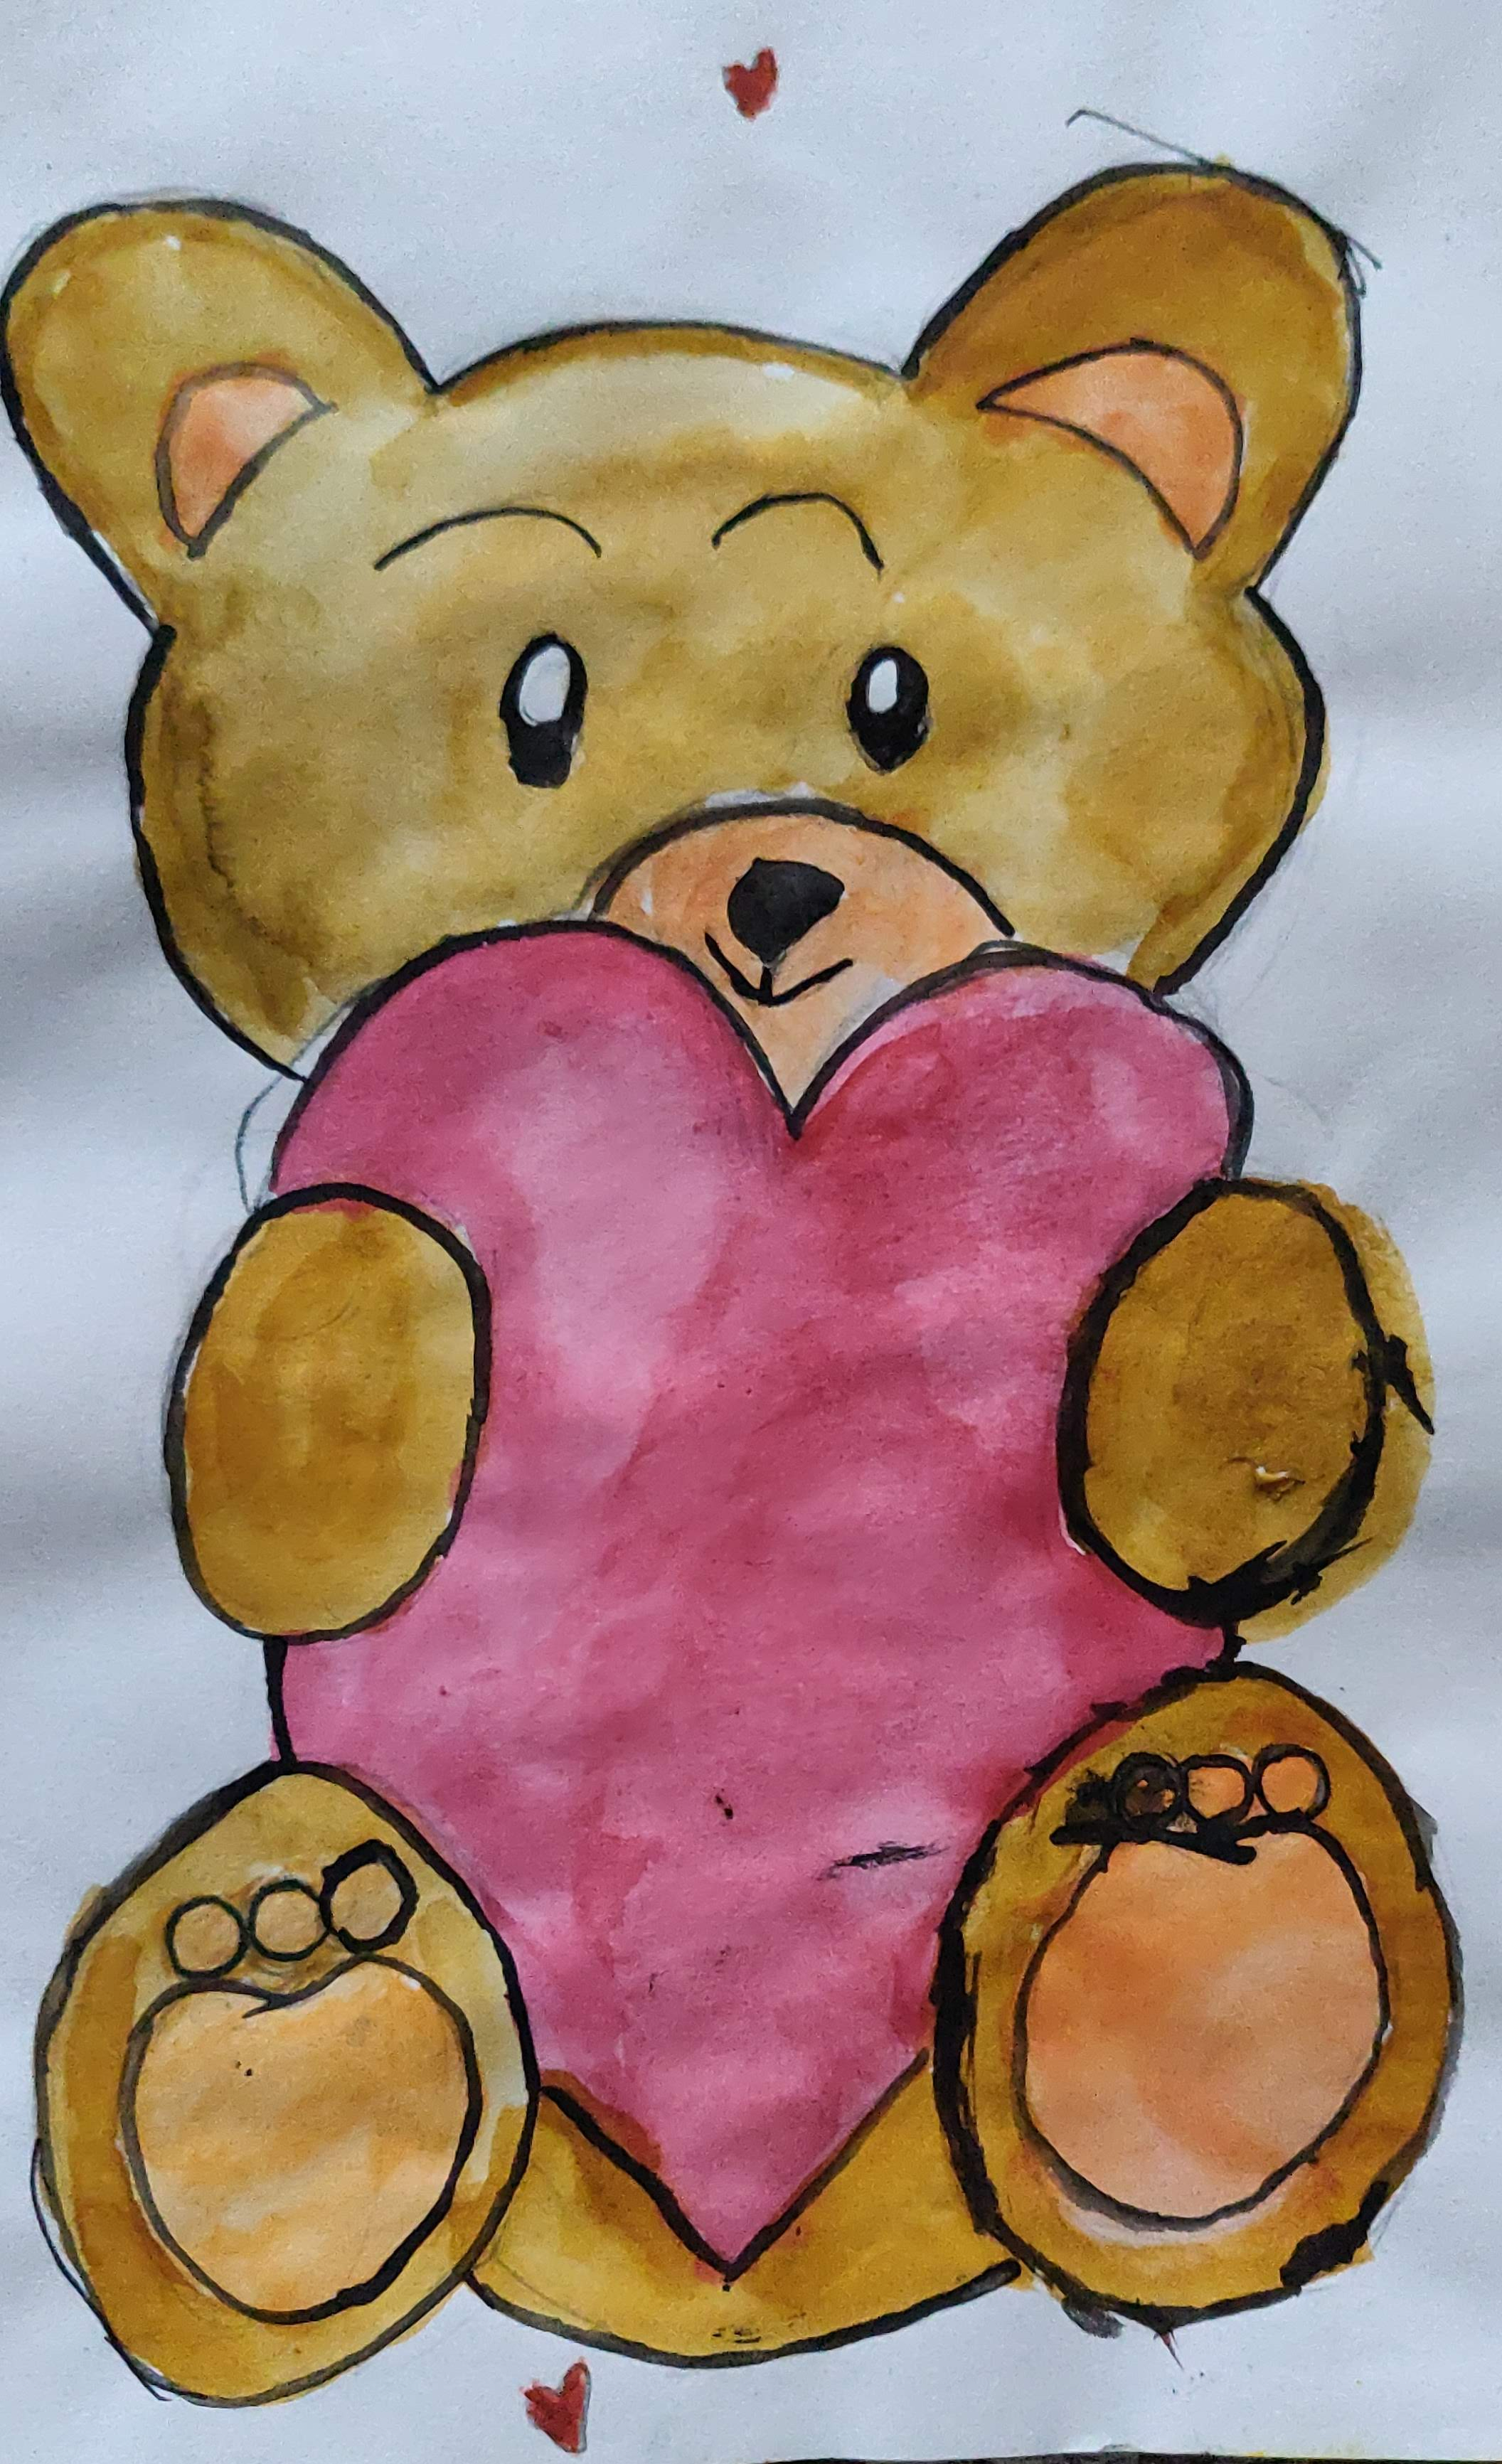 How to paint a teddy bear with a big heart with water colors